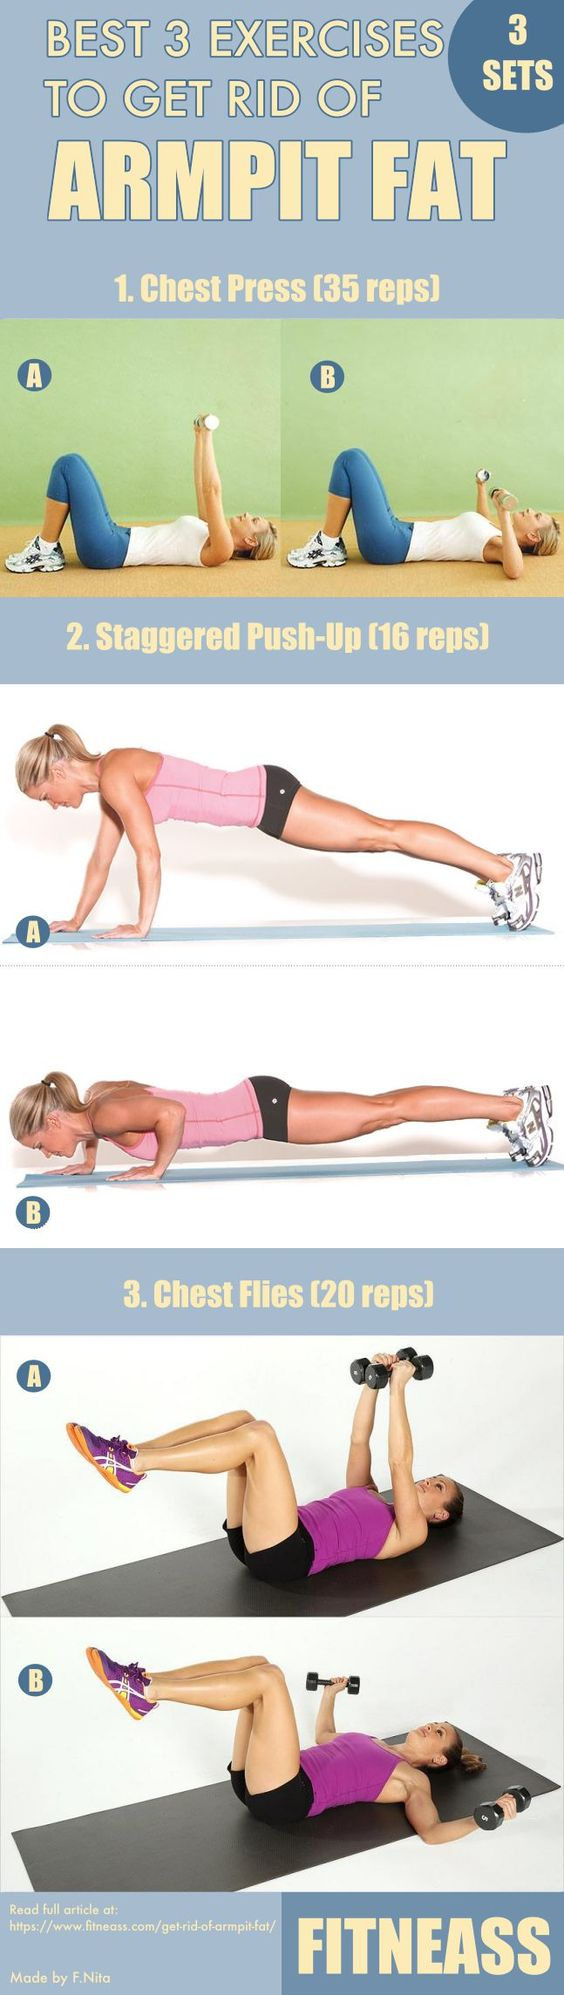 Best 3 Exercises To Get Rid Of Armpit Fat #strong #fitness